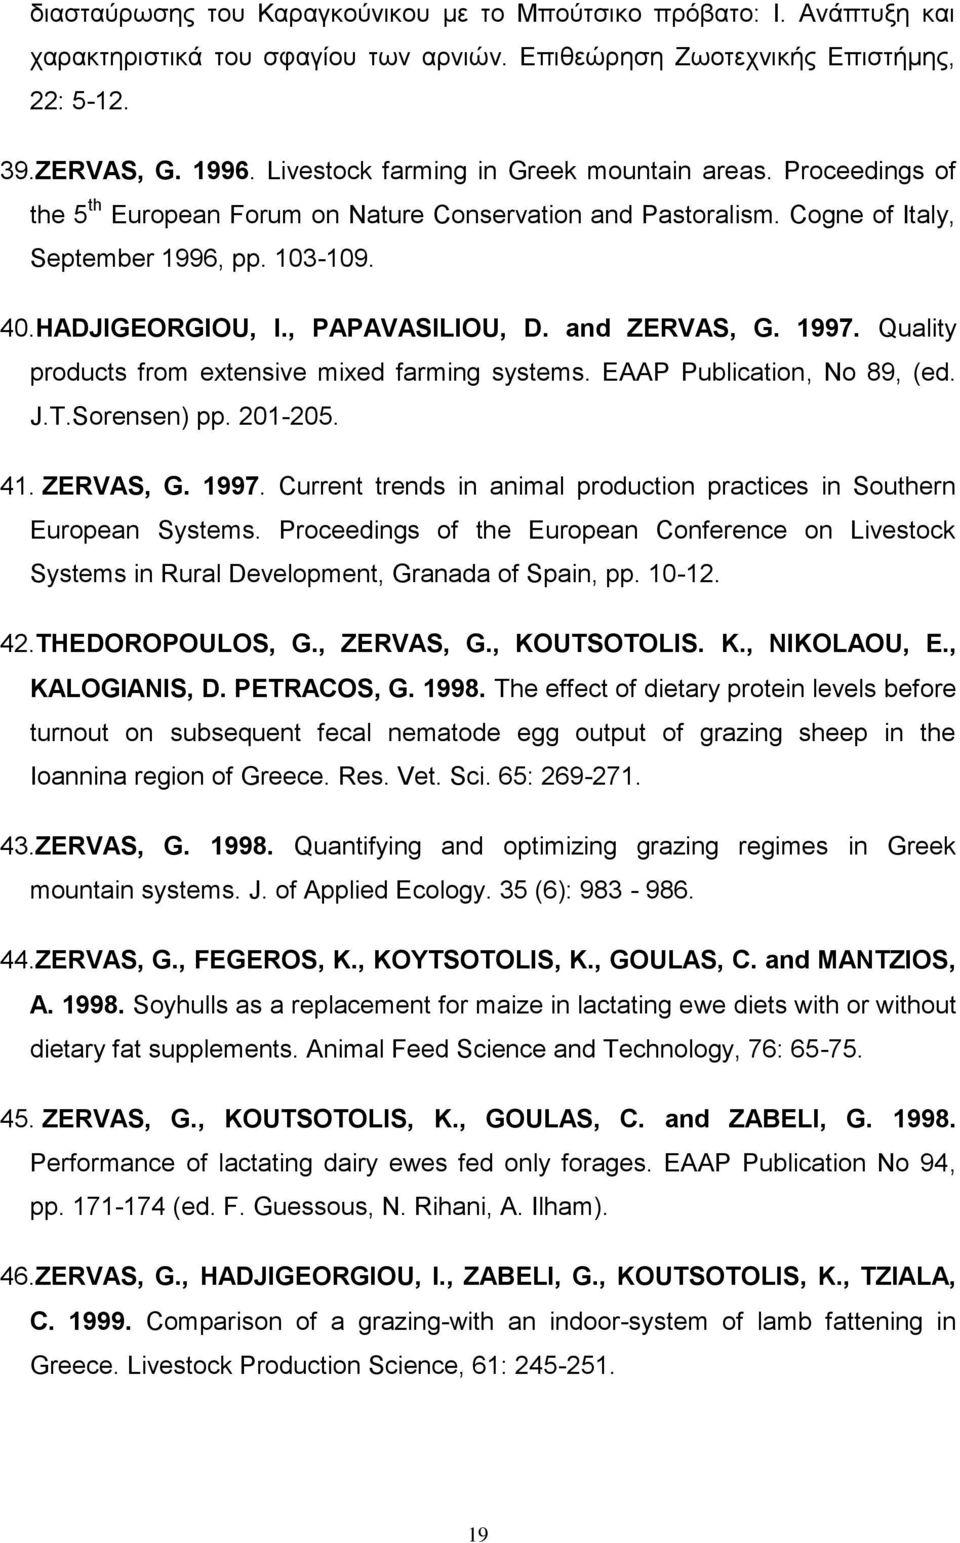 , PAPAVASILIOU, D. and ZERVAS, G. 1997. Quality products from extensive mixed farming systems. EAAP Publication, No 89, (ed. J.T.Sorensen) pp. 201-205. 41. ZERVAS, G. 1997. Current trends in animal production practices in Southern European Systems.